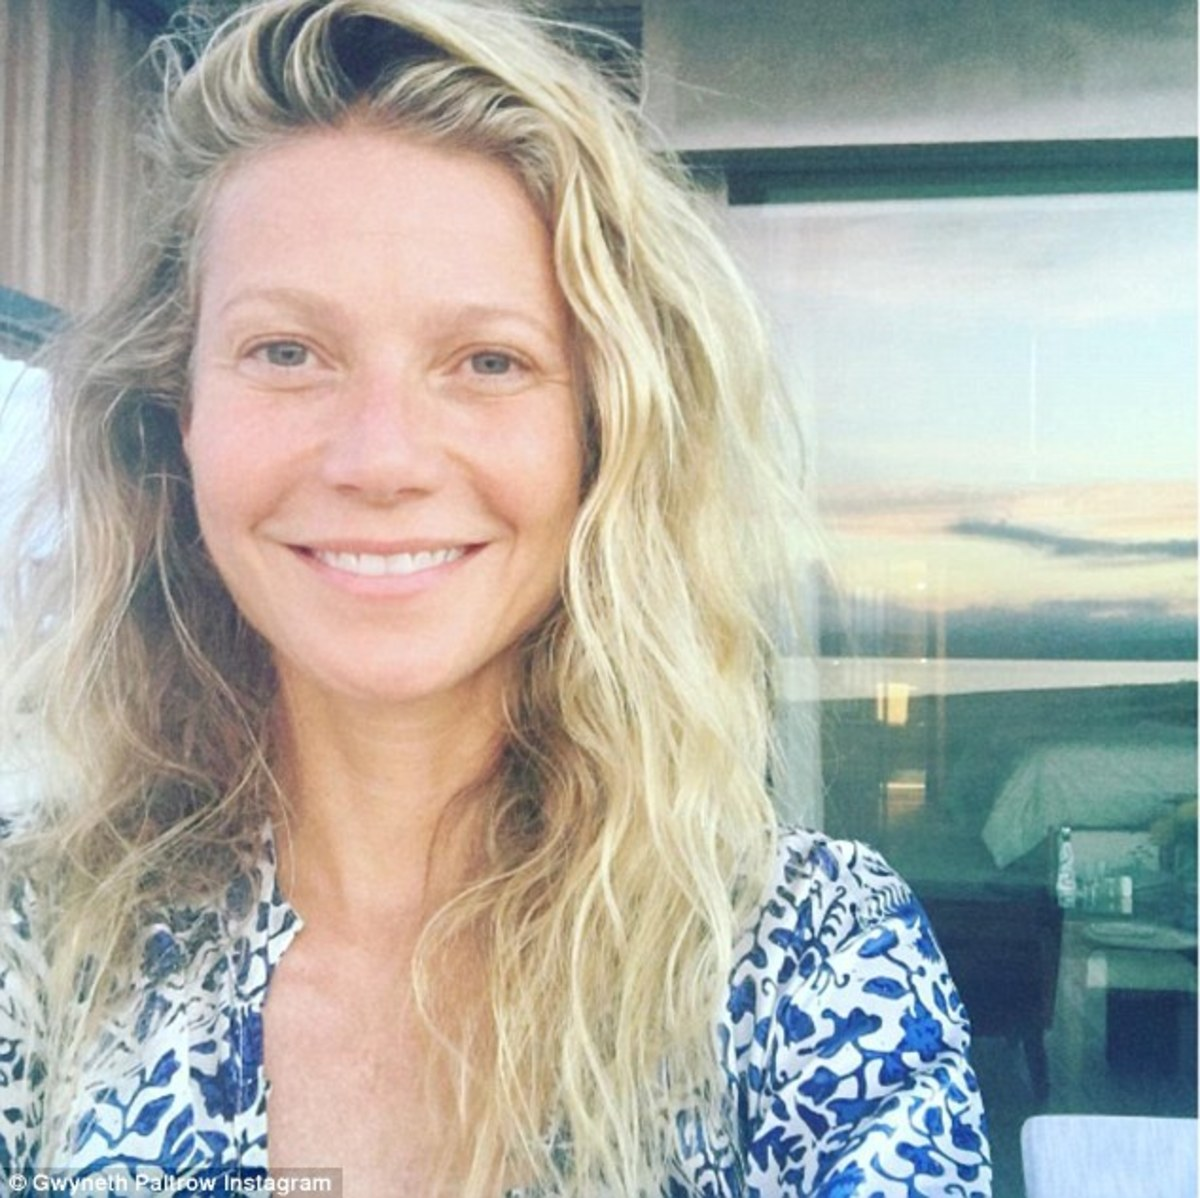 book-reviews-its-all-good-by-gwyneth-paltrow-an-actress-who-has-taken-to-writing